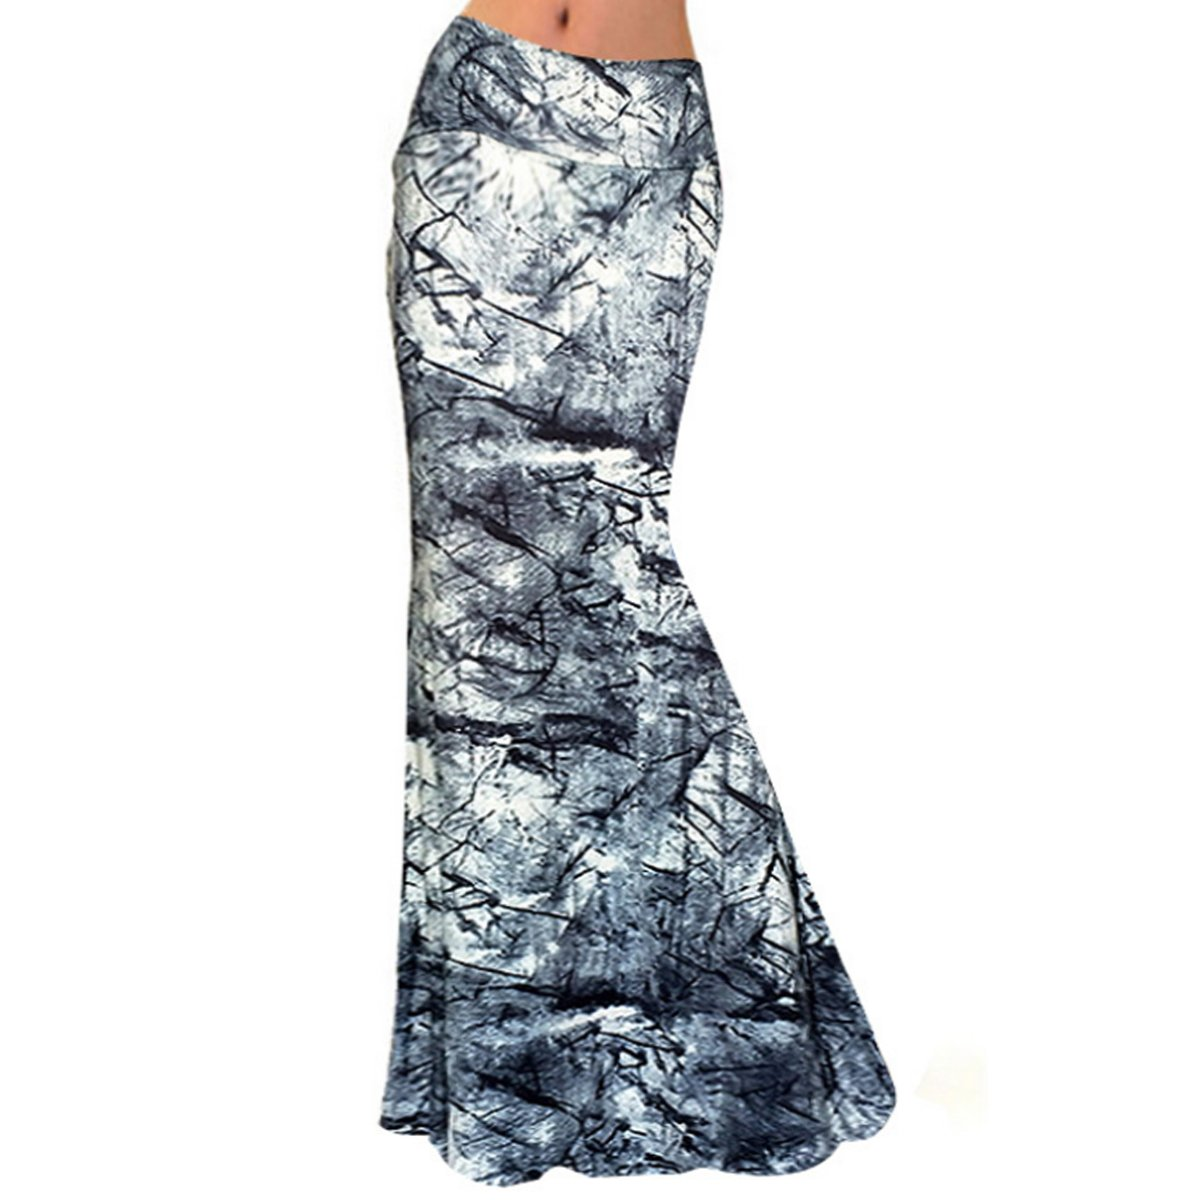 Aisa Womens Multicolored Printed High Waist Maxi Skirt New Fold Over Beach Long Skirt Dress Size Large by Aisa (Image #1)